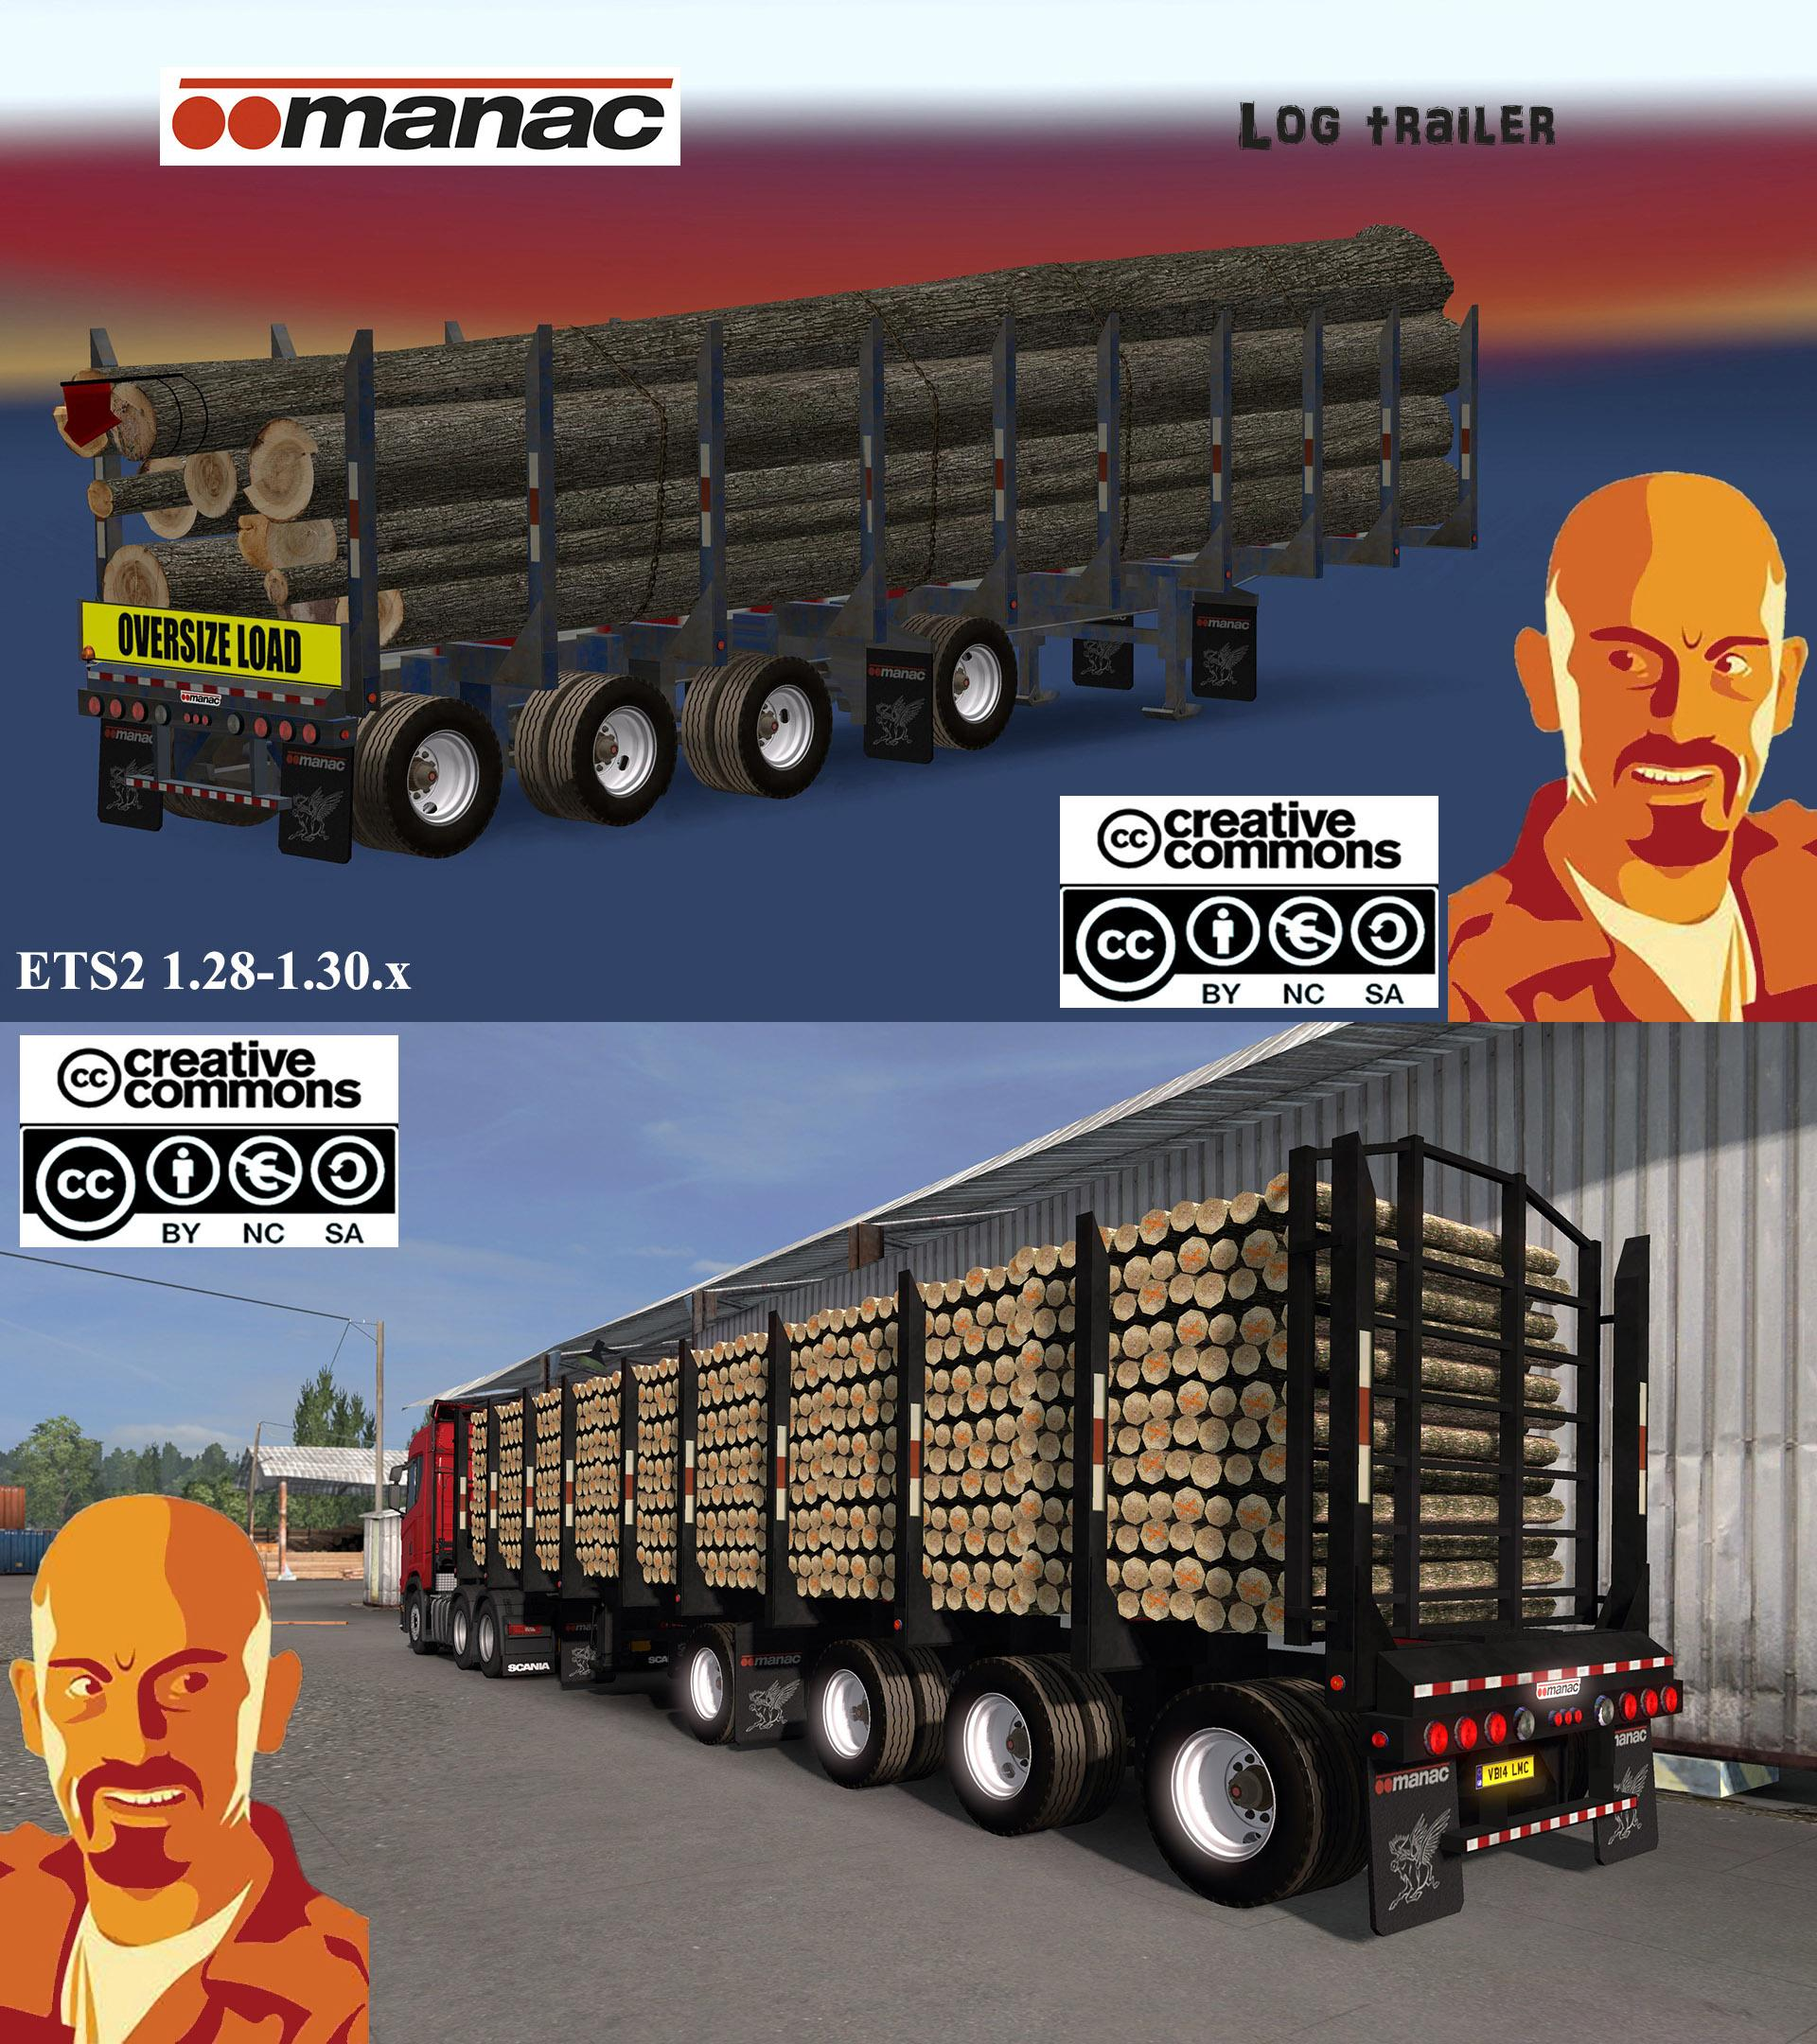 MANAC 4 AXIS LOG TRAILER ETS2 1 28 - 1 30 X MOD - ETS2 Mod